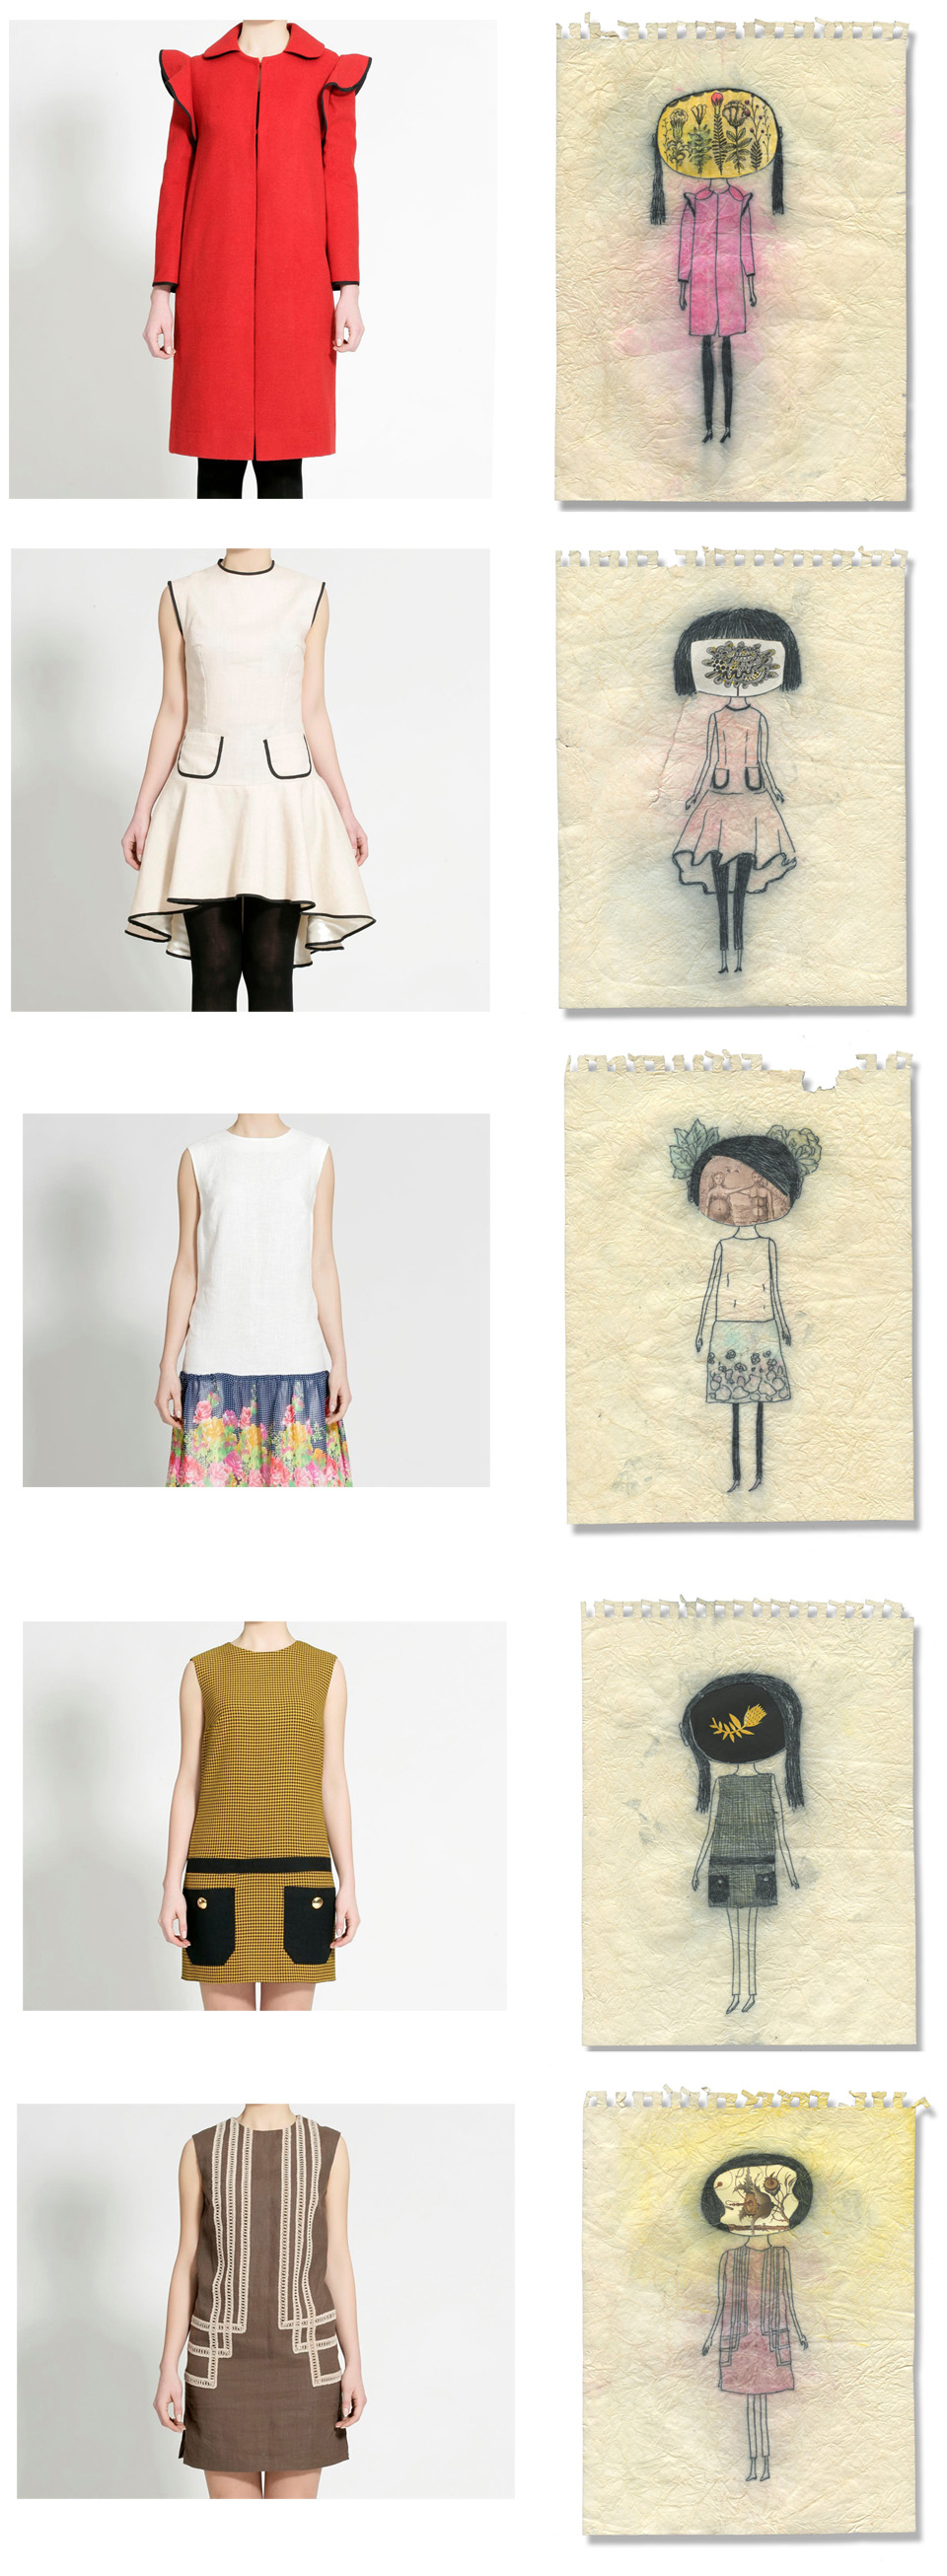 small1 Drawings Inspired by Cihanbey Boutique.